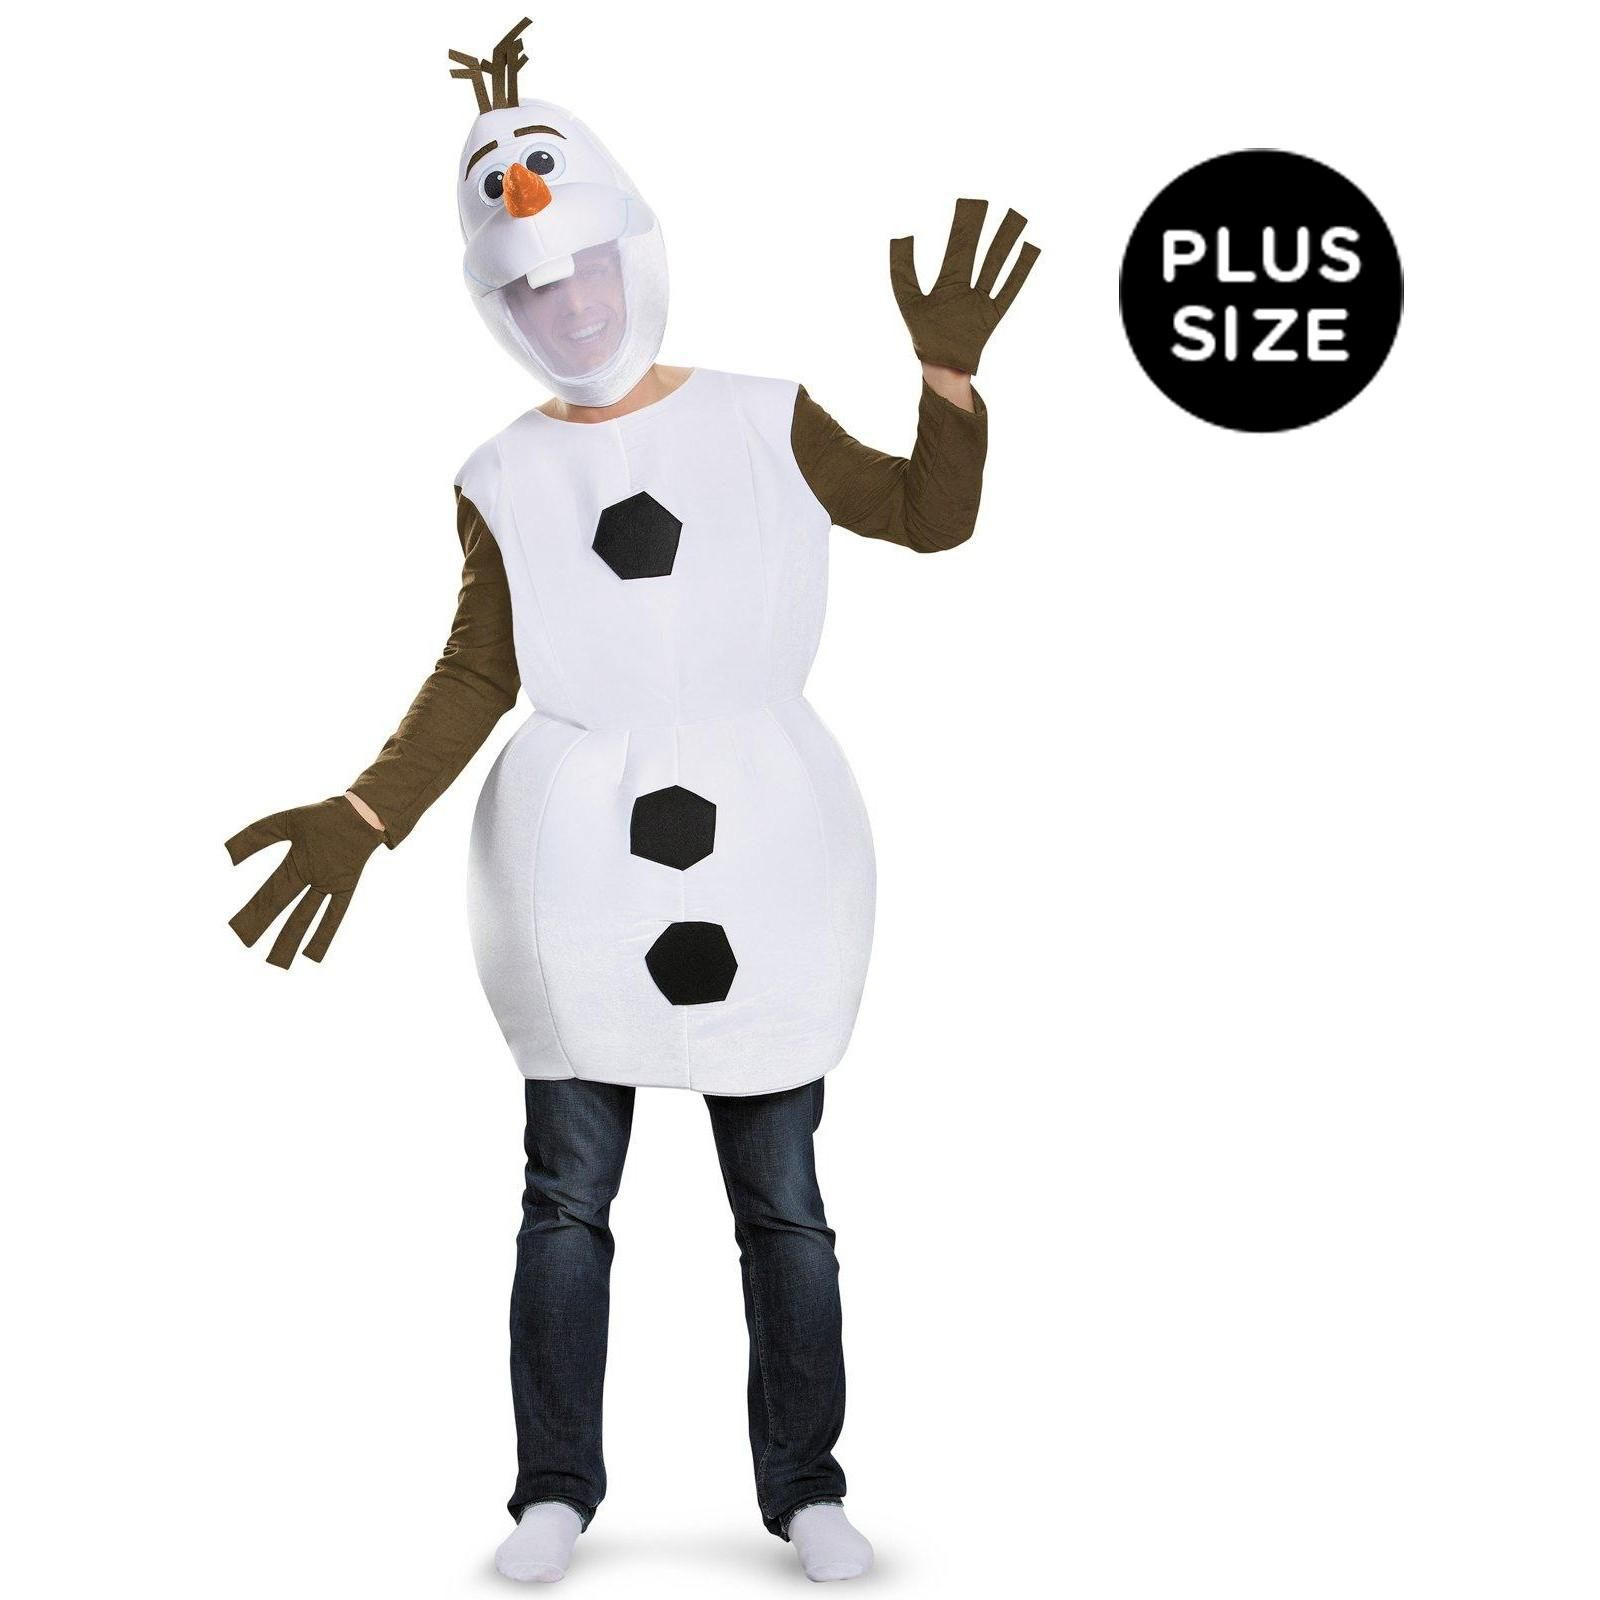 Disney Frozen Olaf Deluxe Olaf Snowman Small 2T Costume Disguise